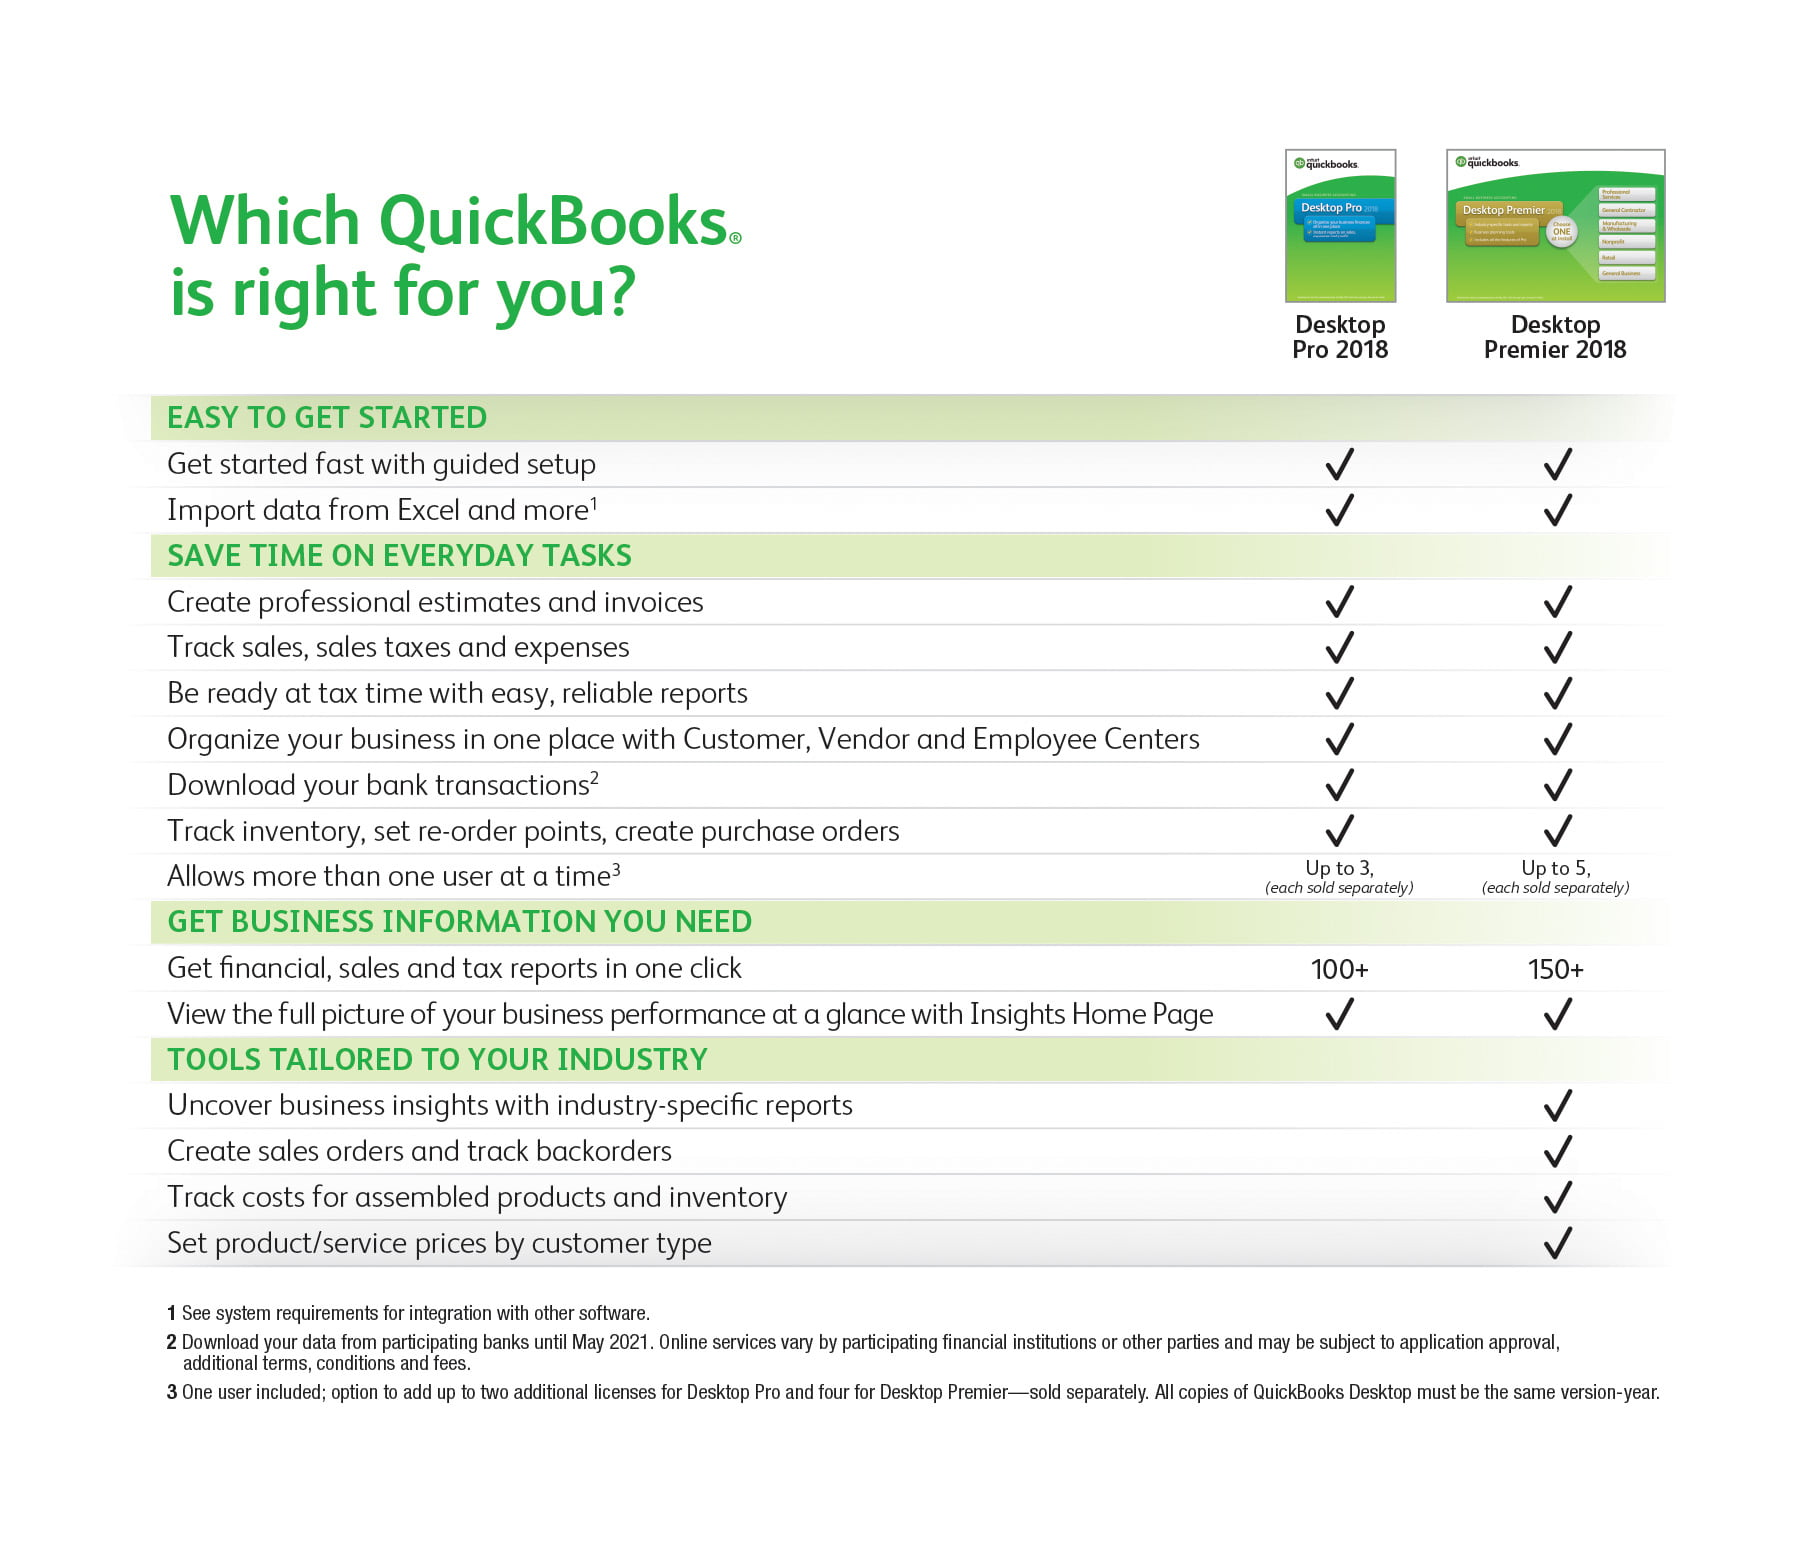 quickbooks desktop premier 2017 free download